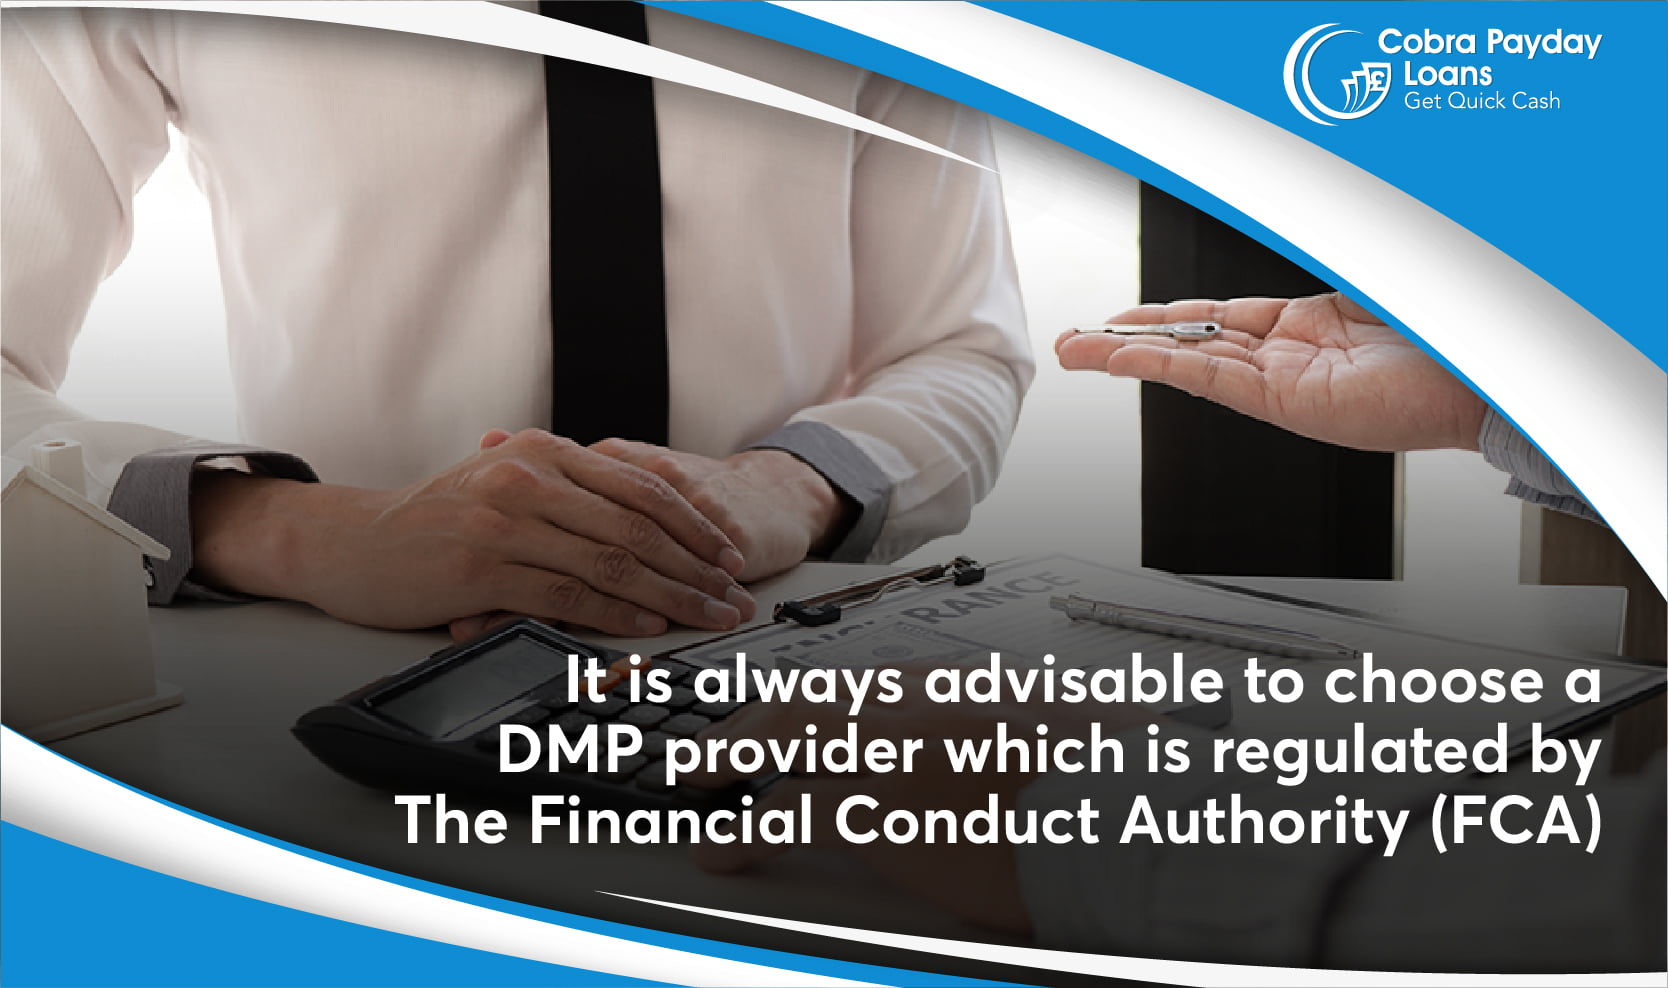 It is always advisable to choose a DMP provider which is regulated by The Financial Conduct Authority (FCA)